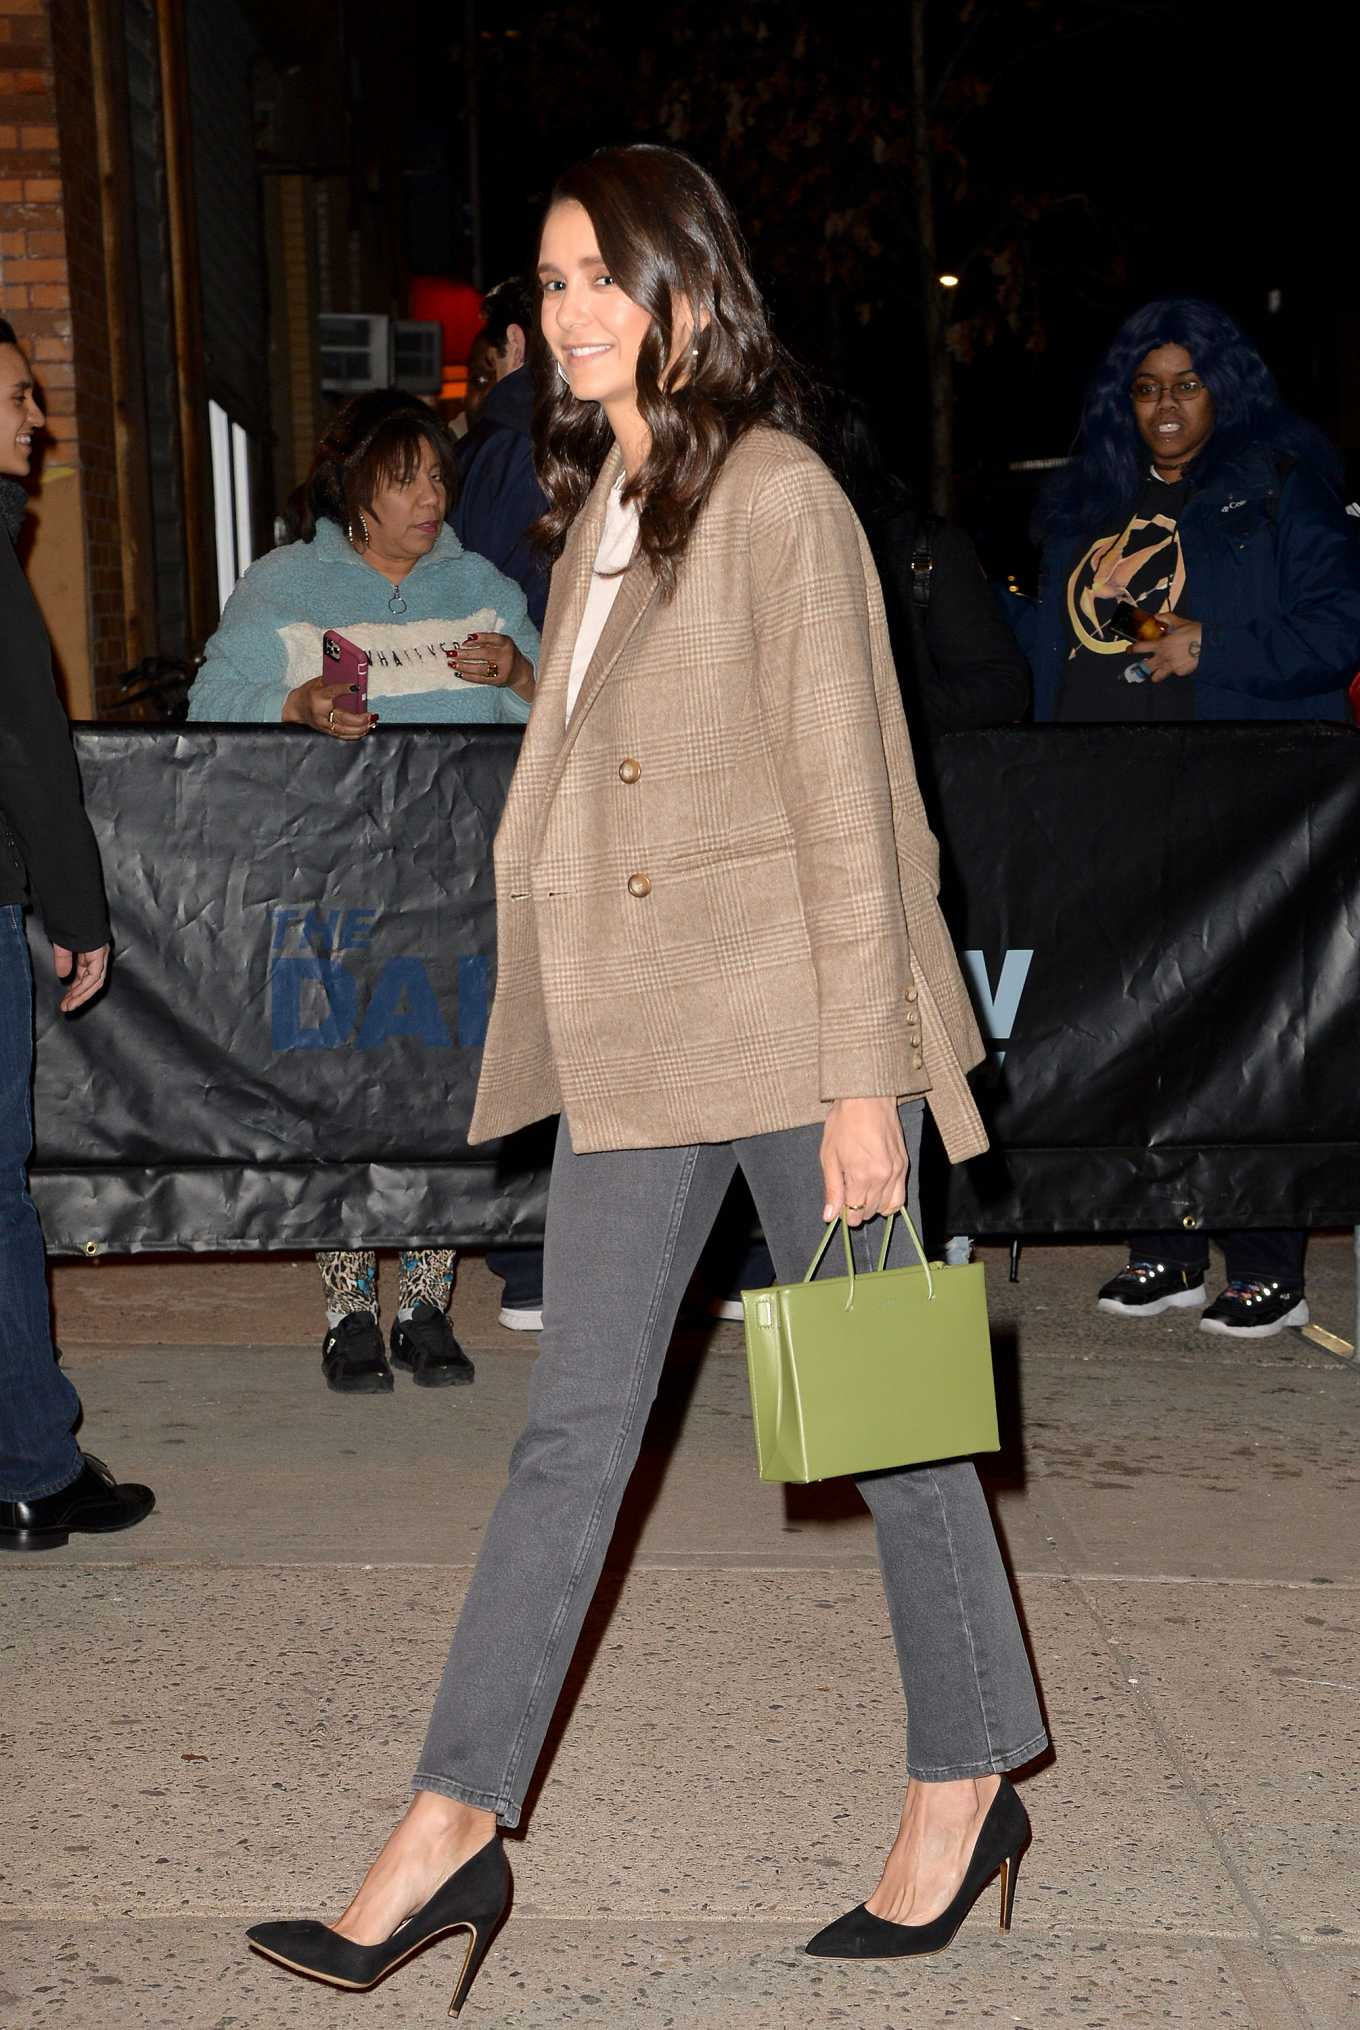 Nina Dobrev Pics While Arrives at The Daily Show with Tevor Noah in New York City